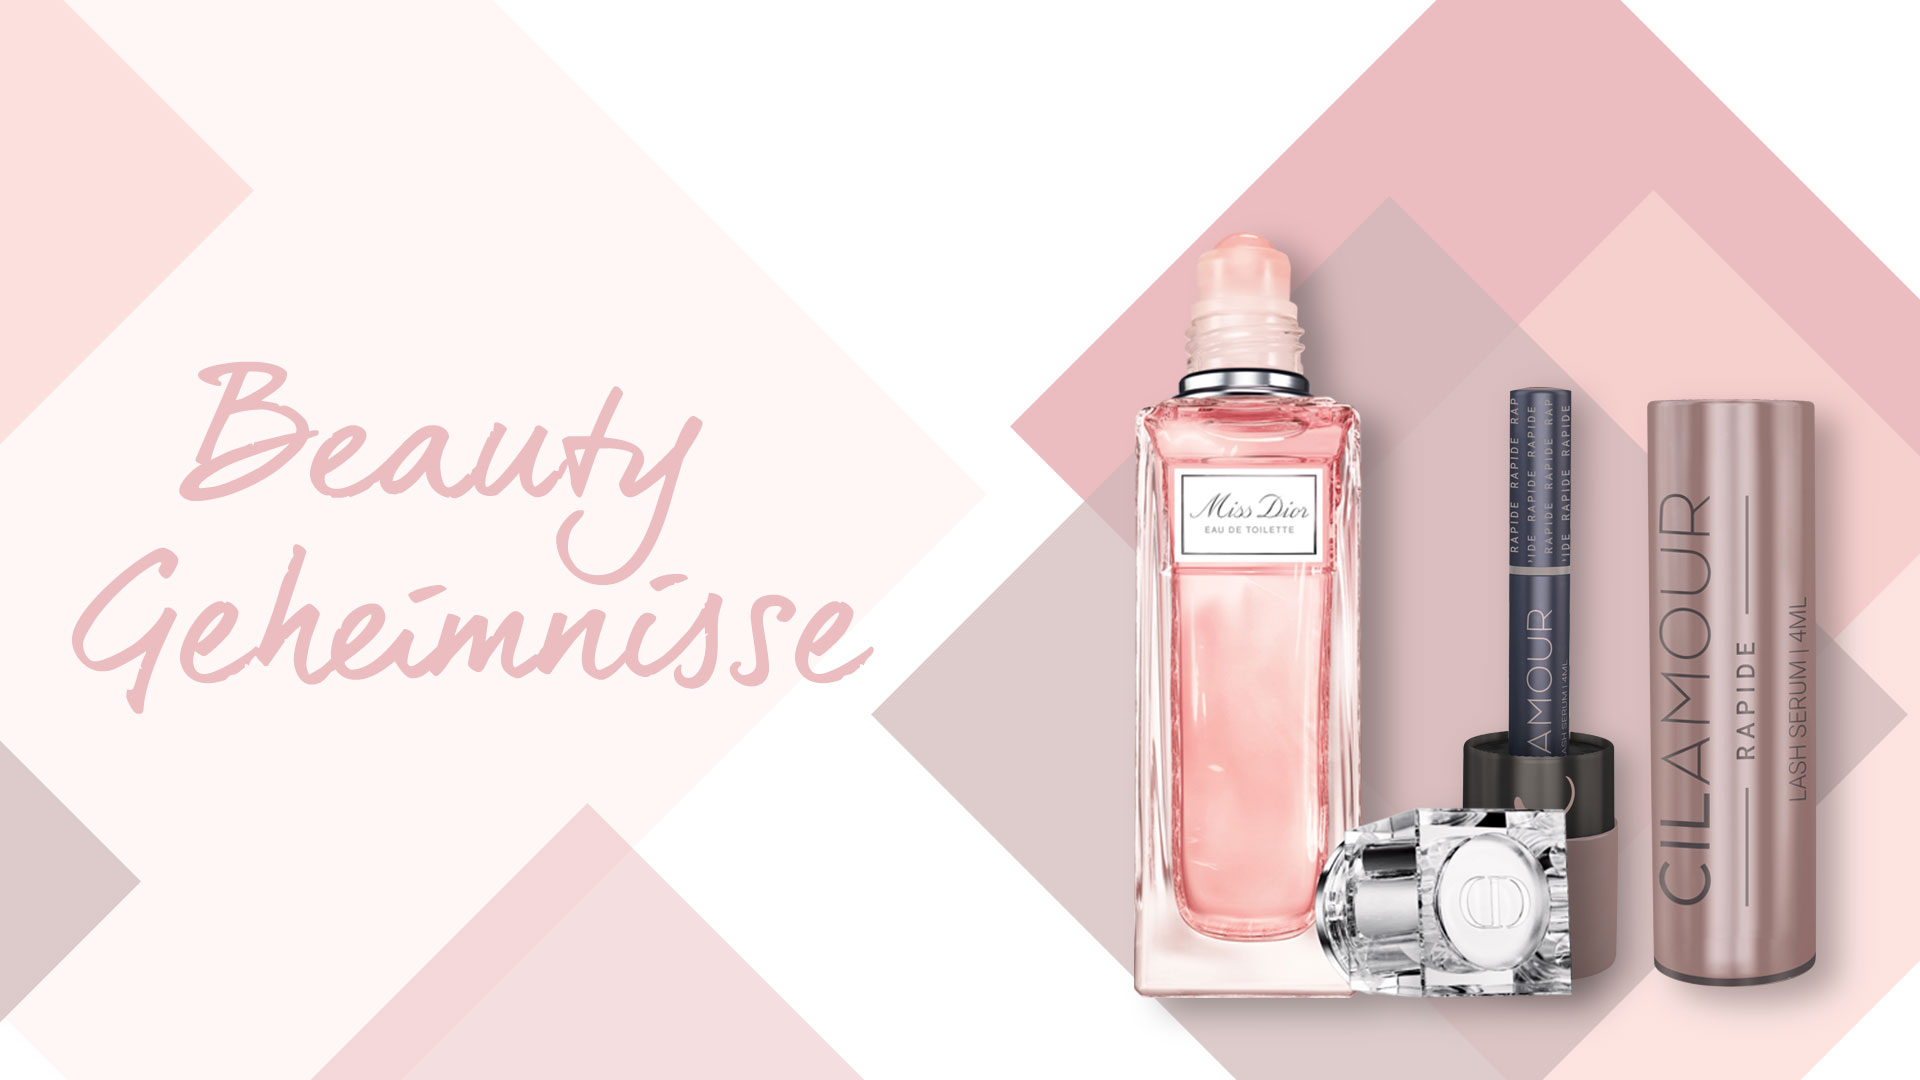 beauty-geheimnis-mai-cilamour-rapide-lash-serum-miss-dior-roller-pearl